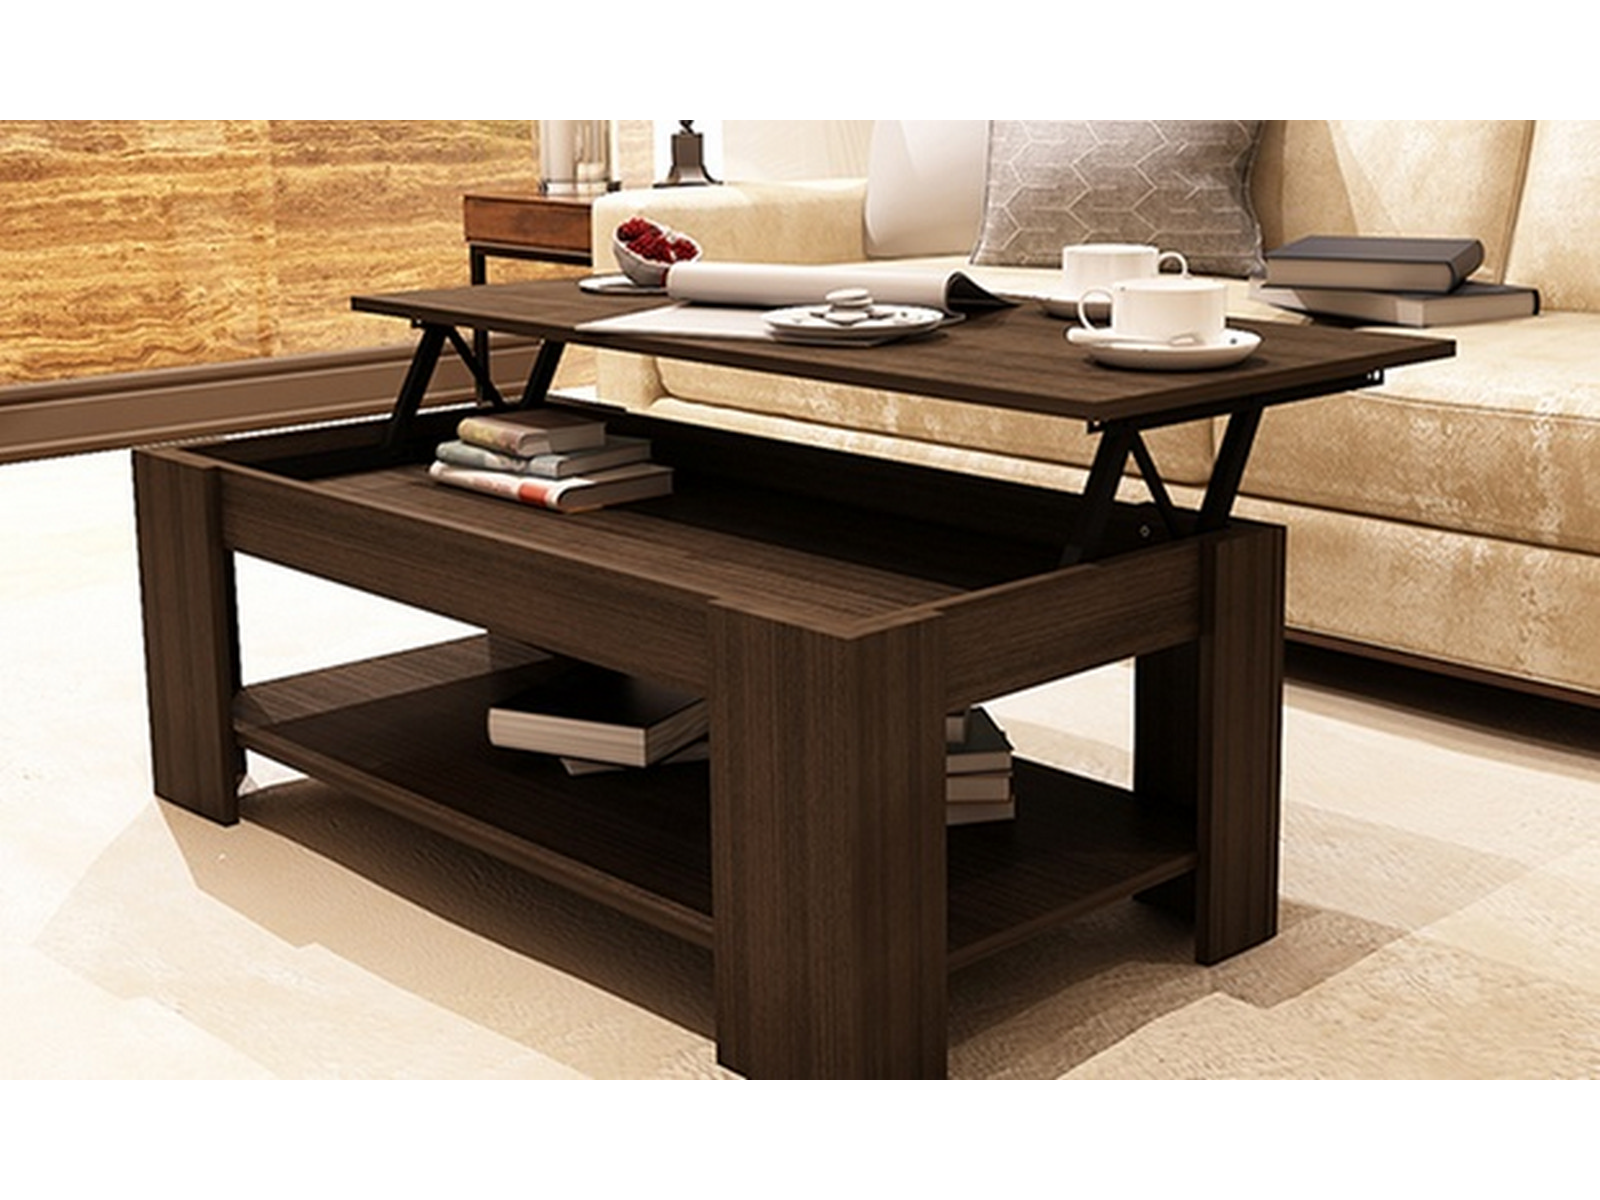 New caspian espresso lift up top coffee table with storage shelf Lifting top coffee table